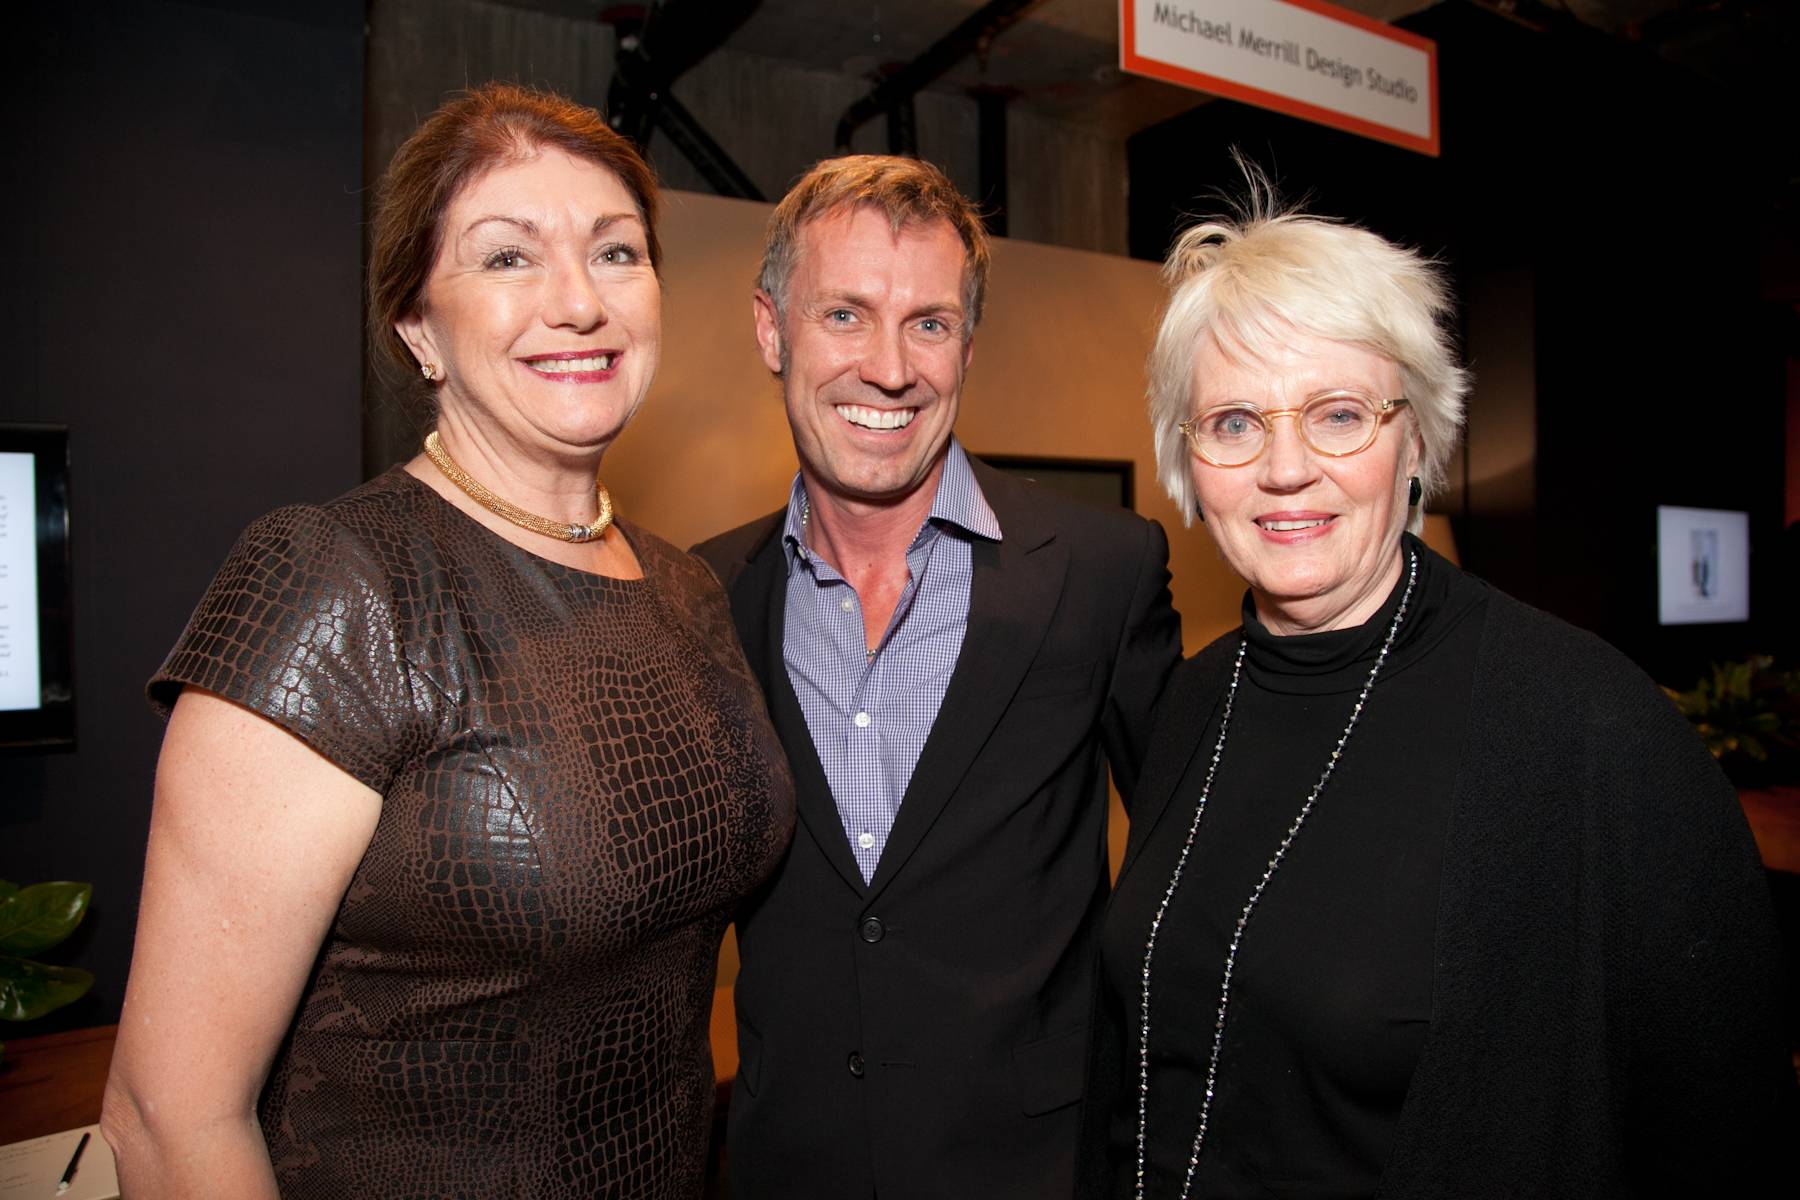 Dwell President Michela O'Connor Abrams, Designer David Mast and Design Lab Creative Director Nancy Van Natta